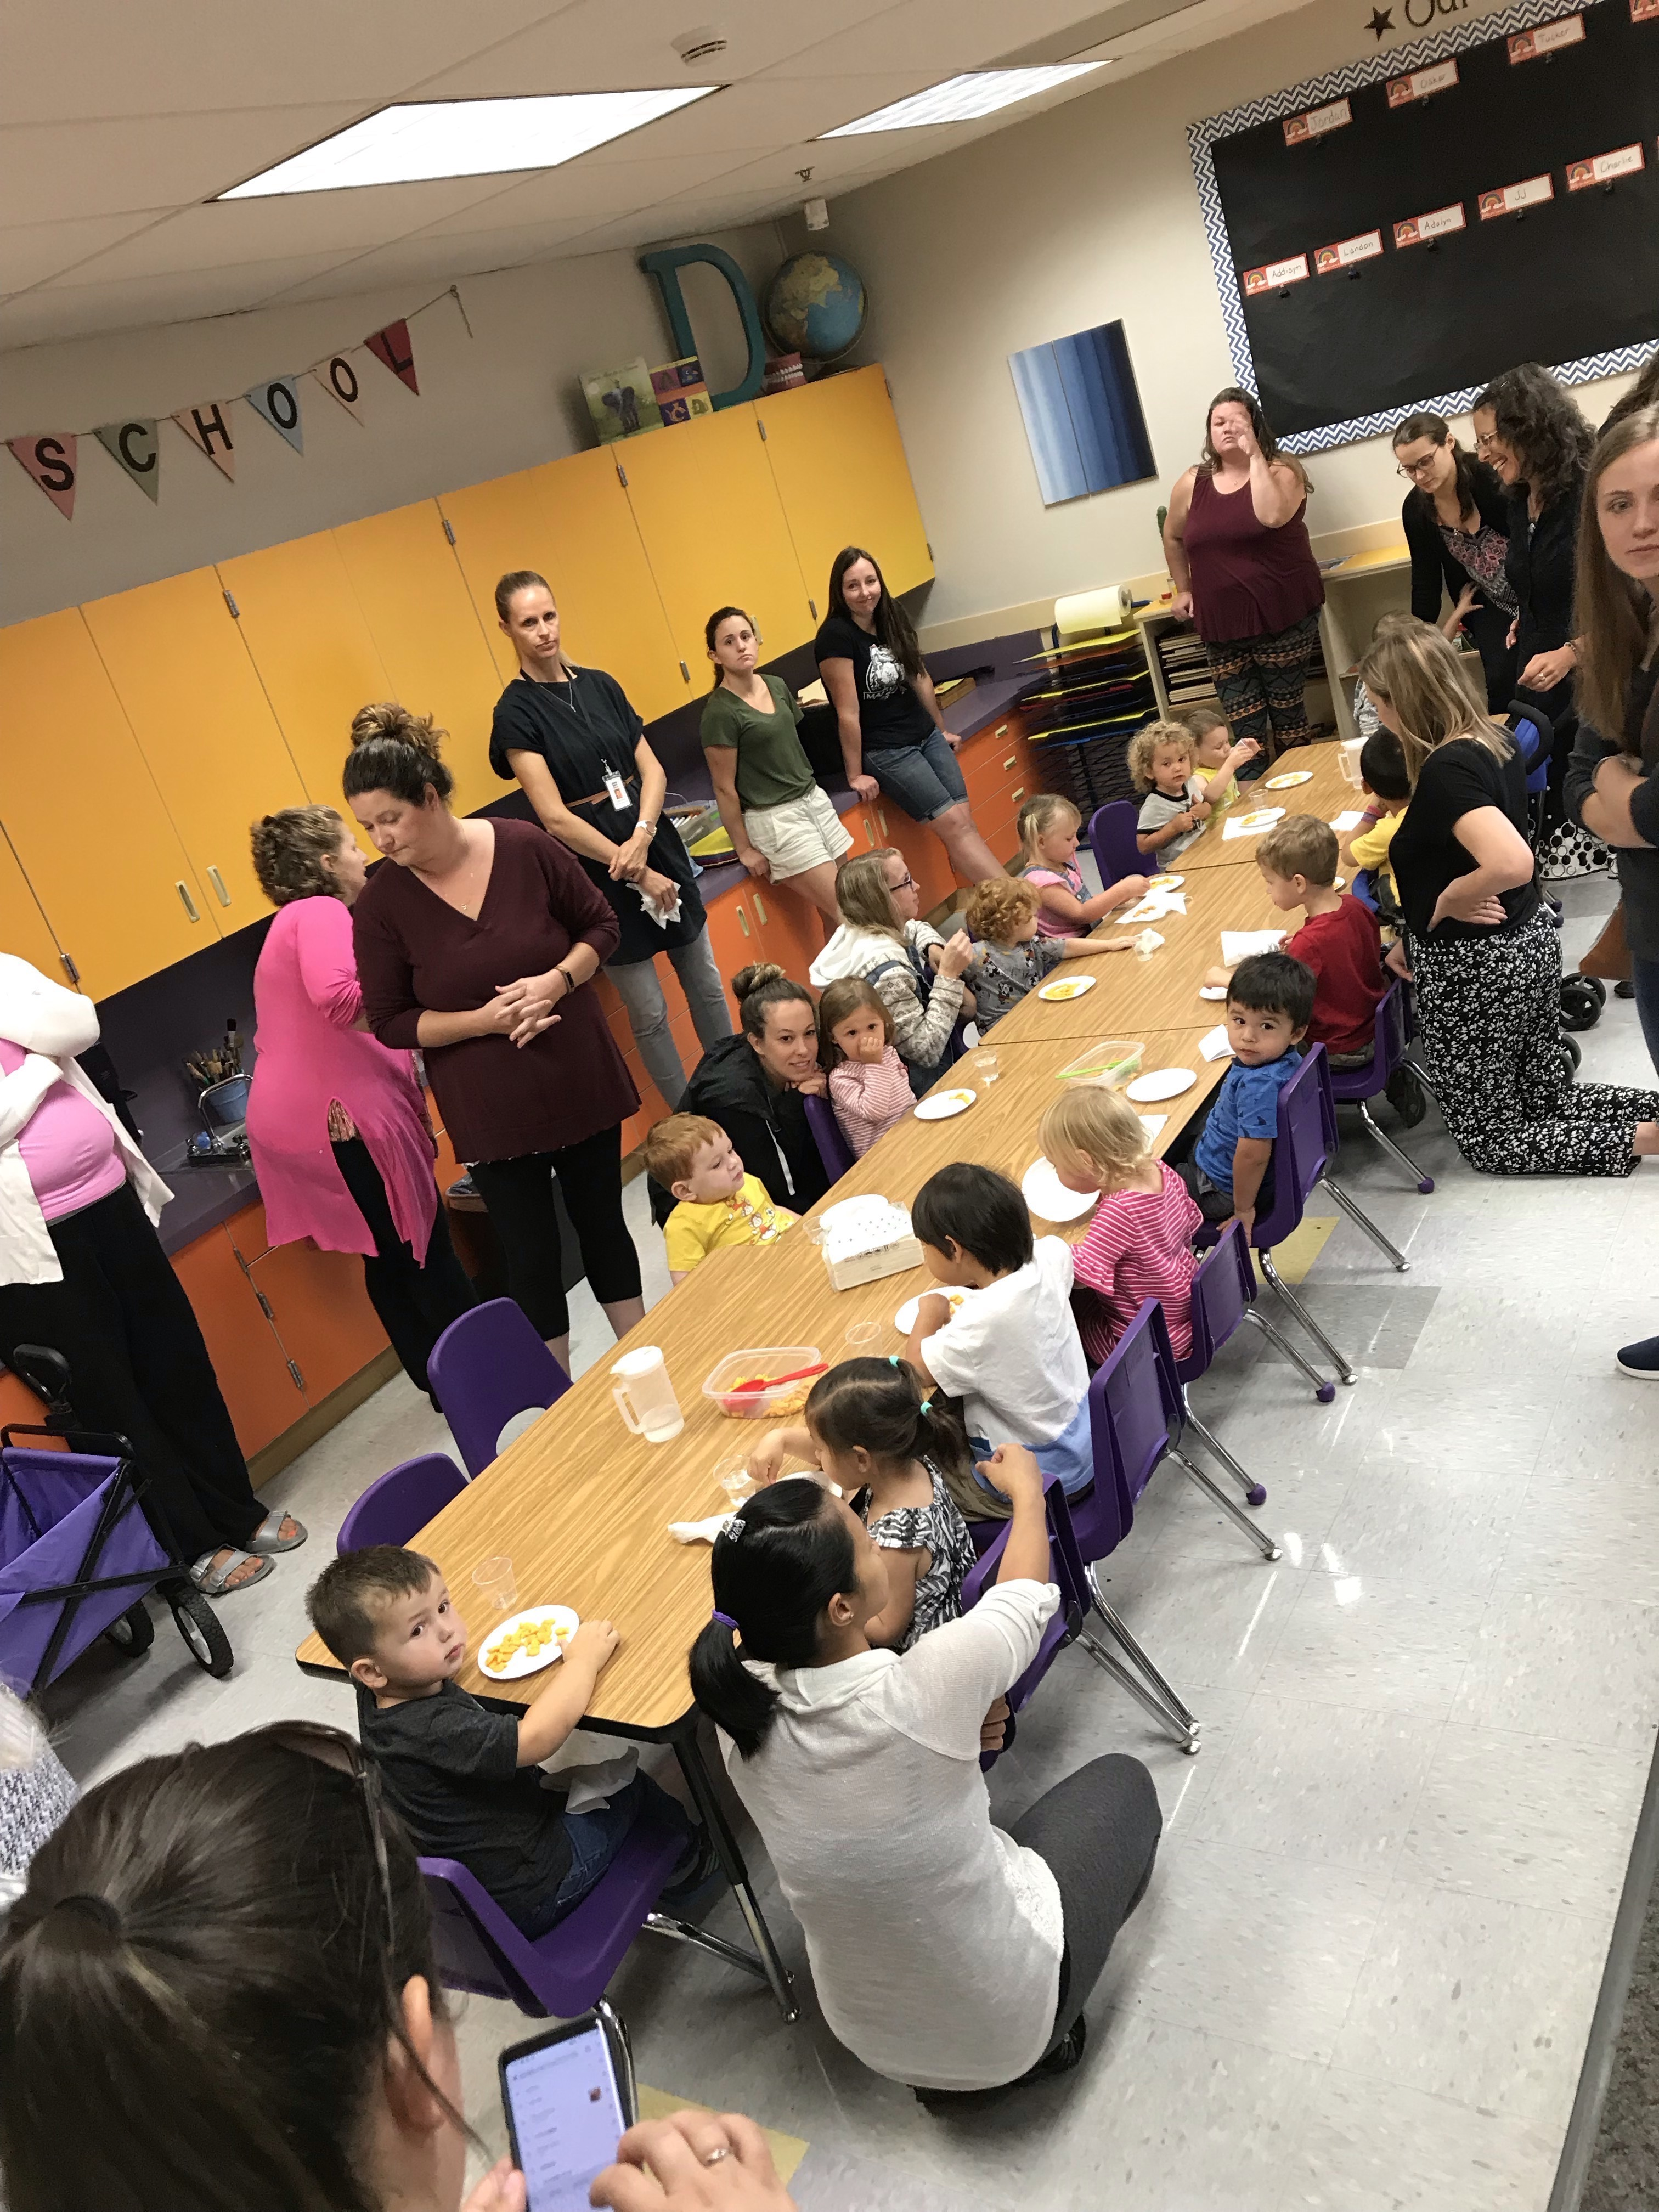 1-2-3 grow preschool students seated at a table with parents and staff across from them